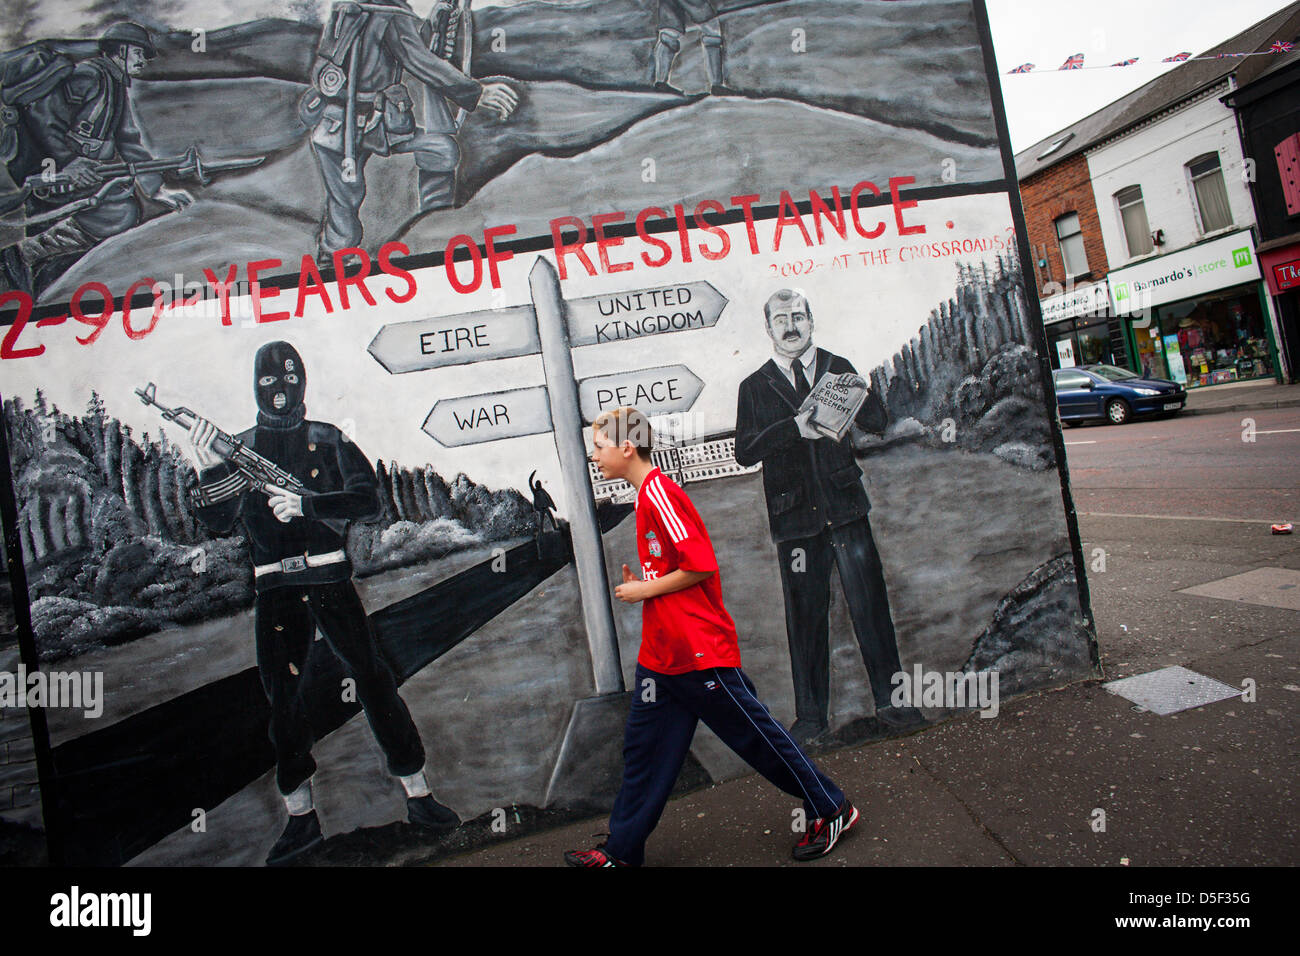 A mural on the Shankill Road, Belfast, Northern Ireland. - Stock Image